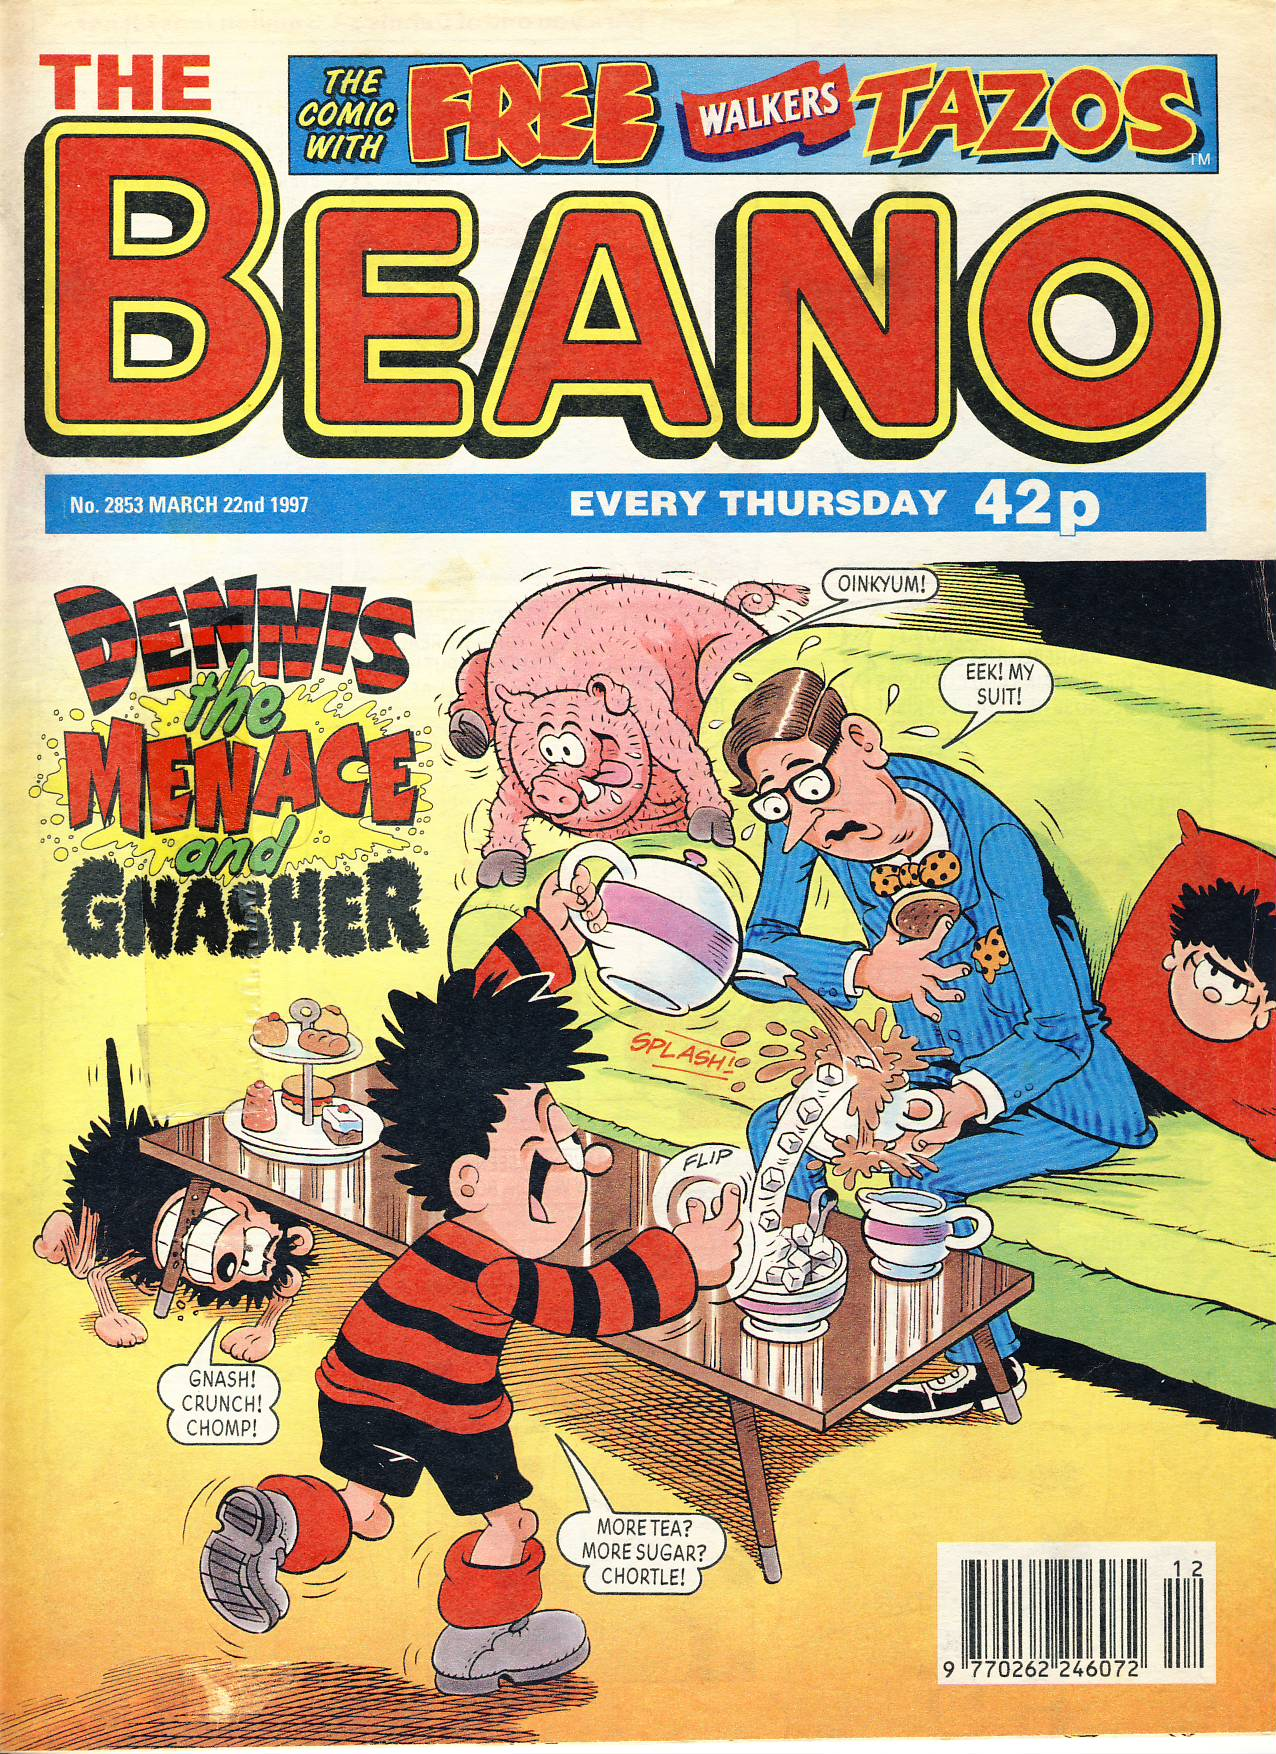 1997 March 22nd BEANO vintage comic Good Gift Christmas Present Birthday Anniversary ref211 a pre-owned item in very good read condition.